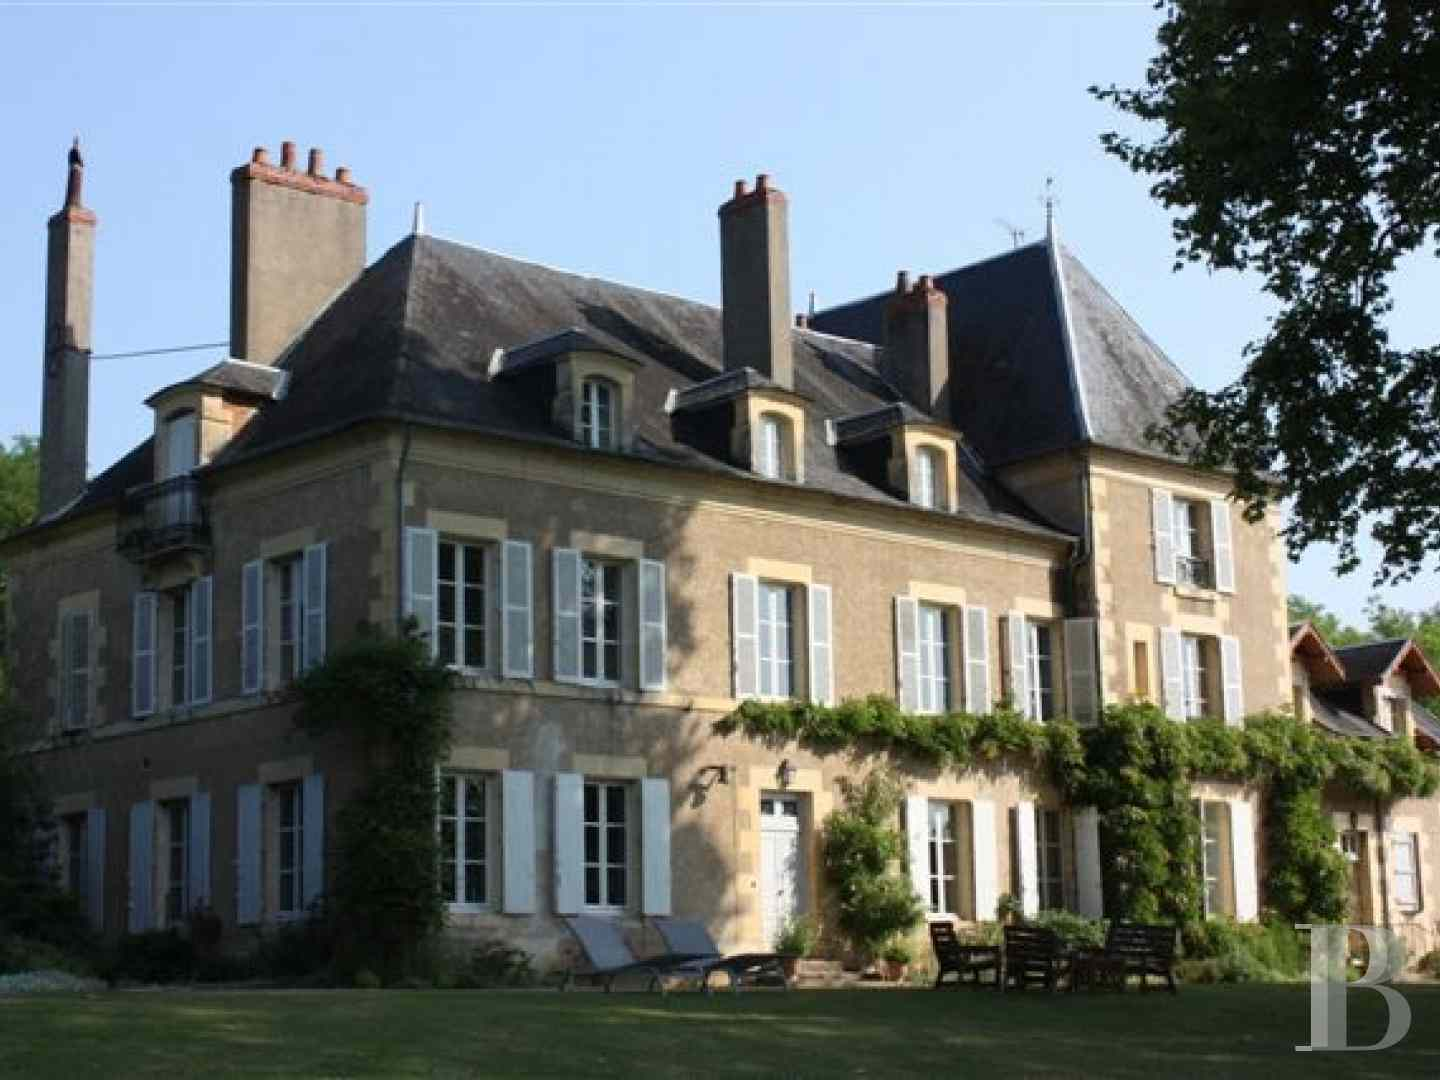 property for sale France burgundy near paris - 1 zoom